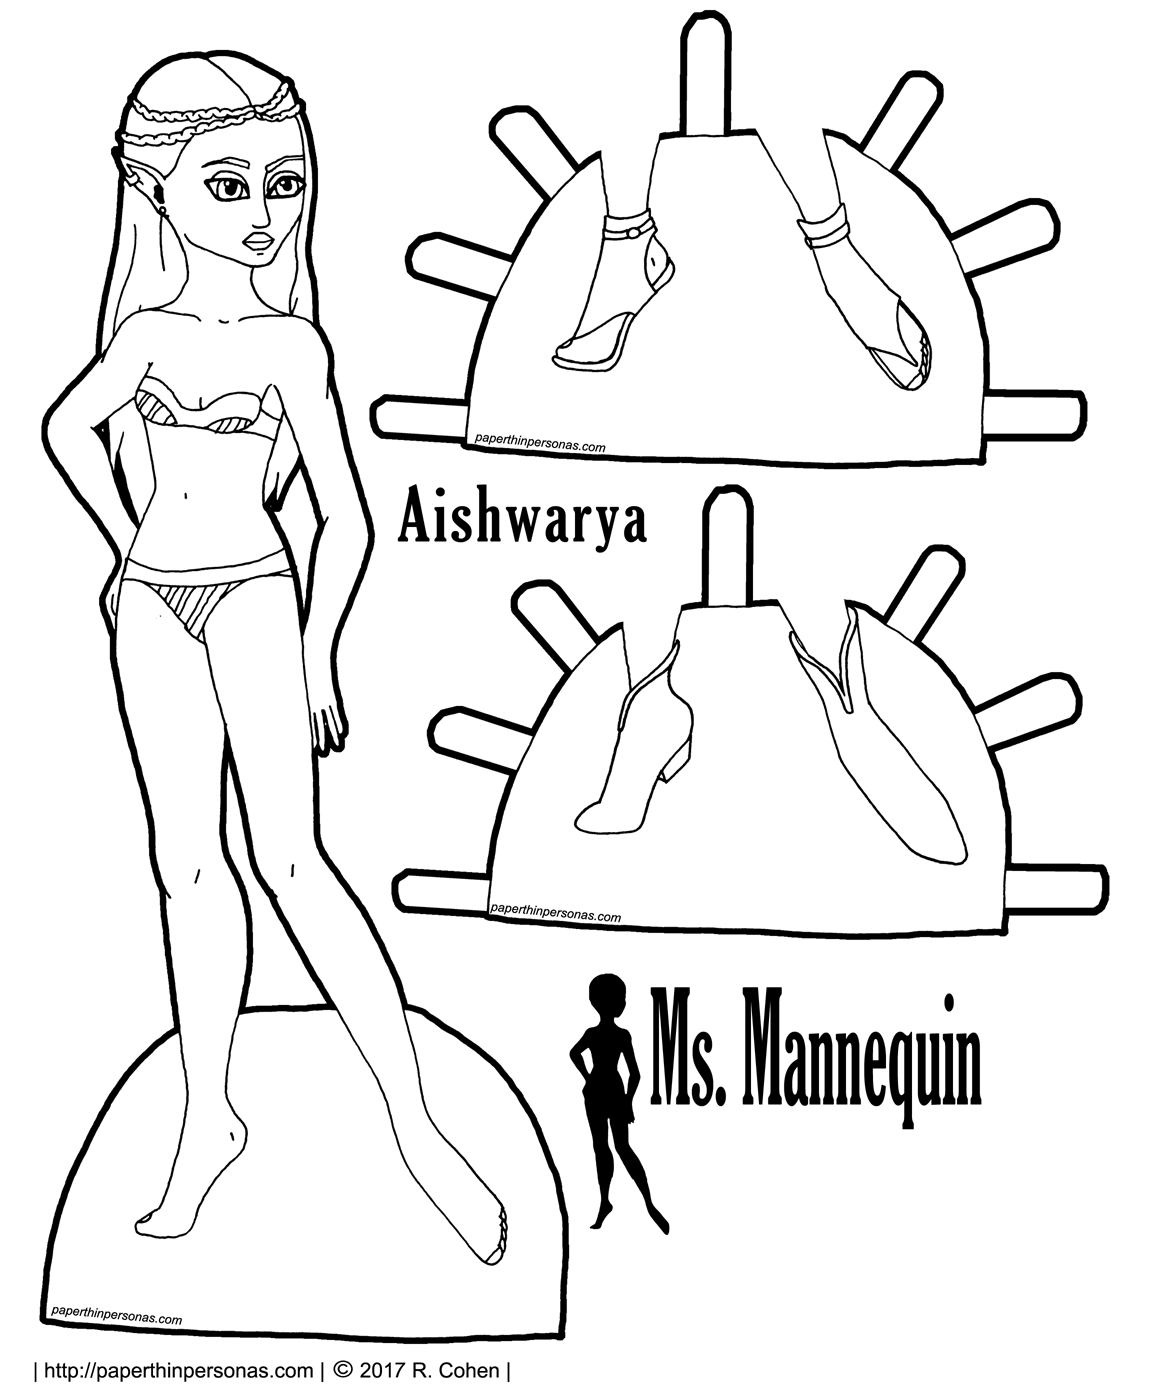 A short haired printable paper doll coloring page who can wear any of the Ms. Mannequin paper doll clothing. Free to print from paperthinpersonas.com